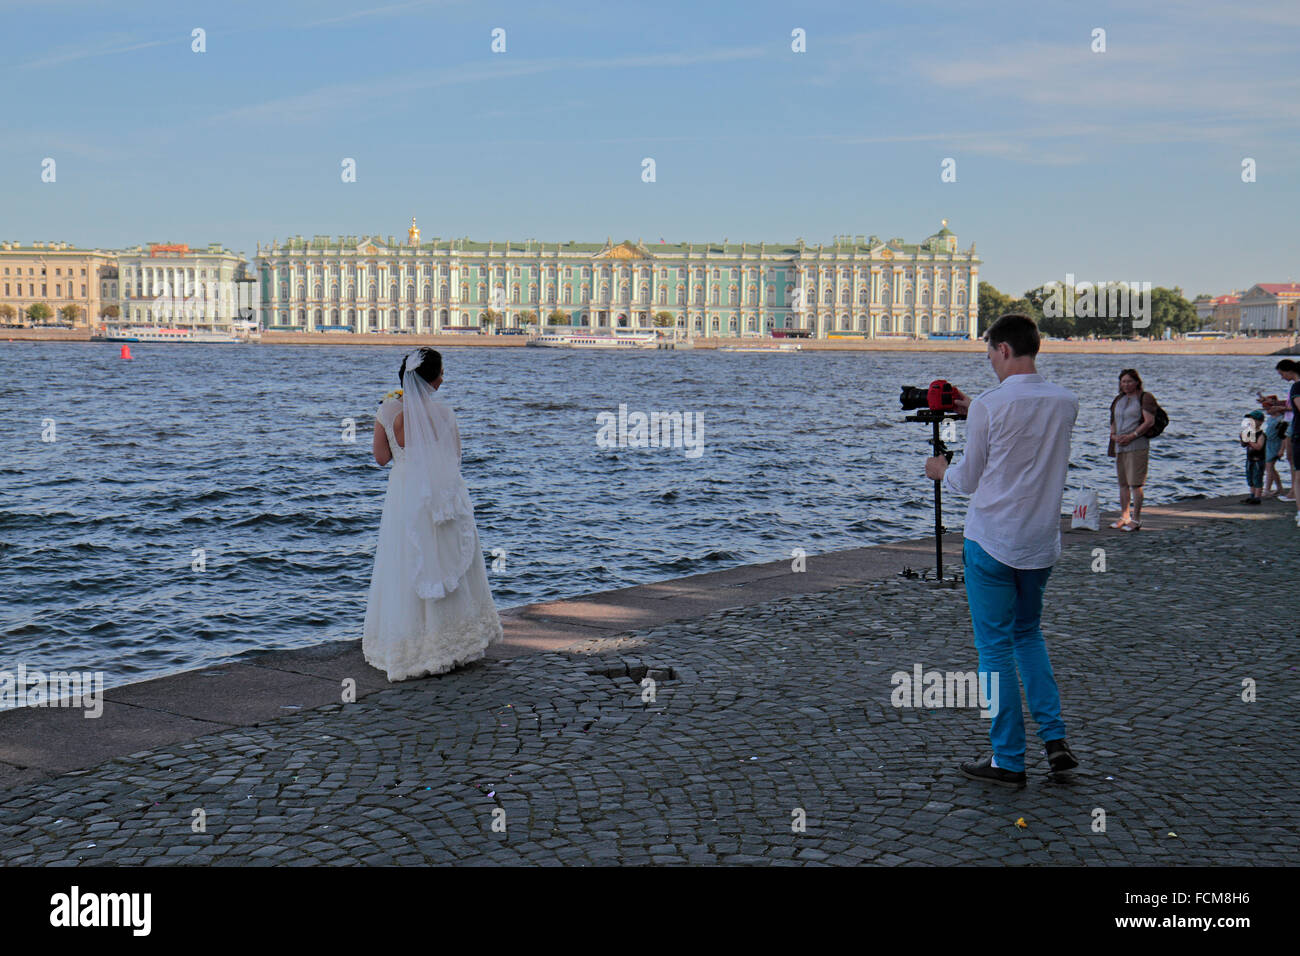 A bride being photographed on the banks of the Neva River, opposite the Winter Palace in Saint Petersburg, Russia. - Stock Image